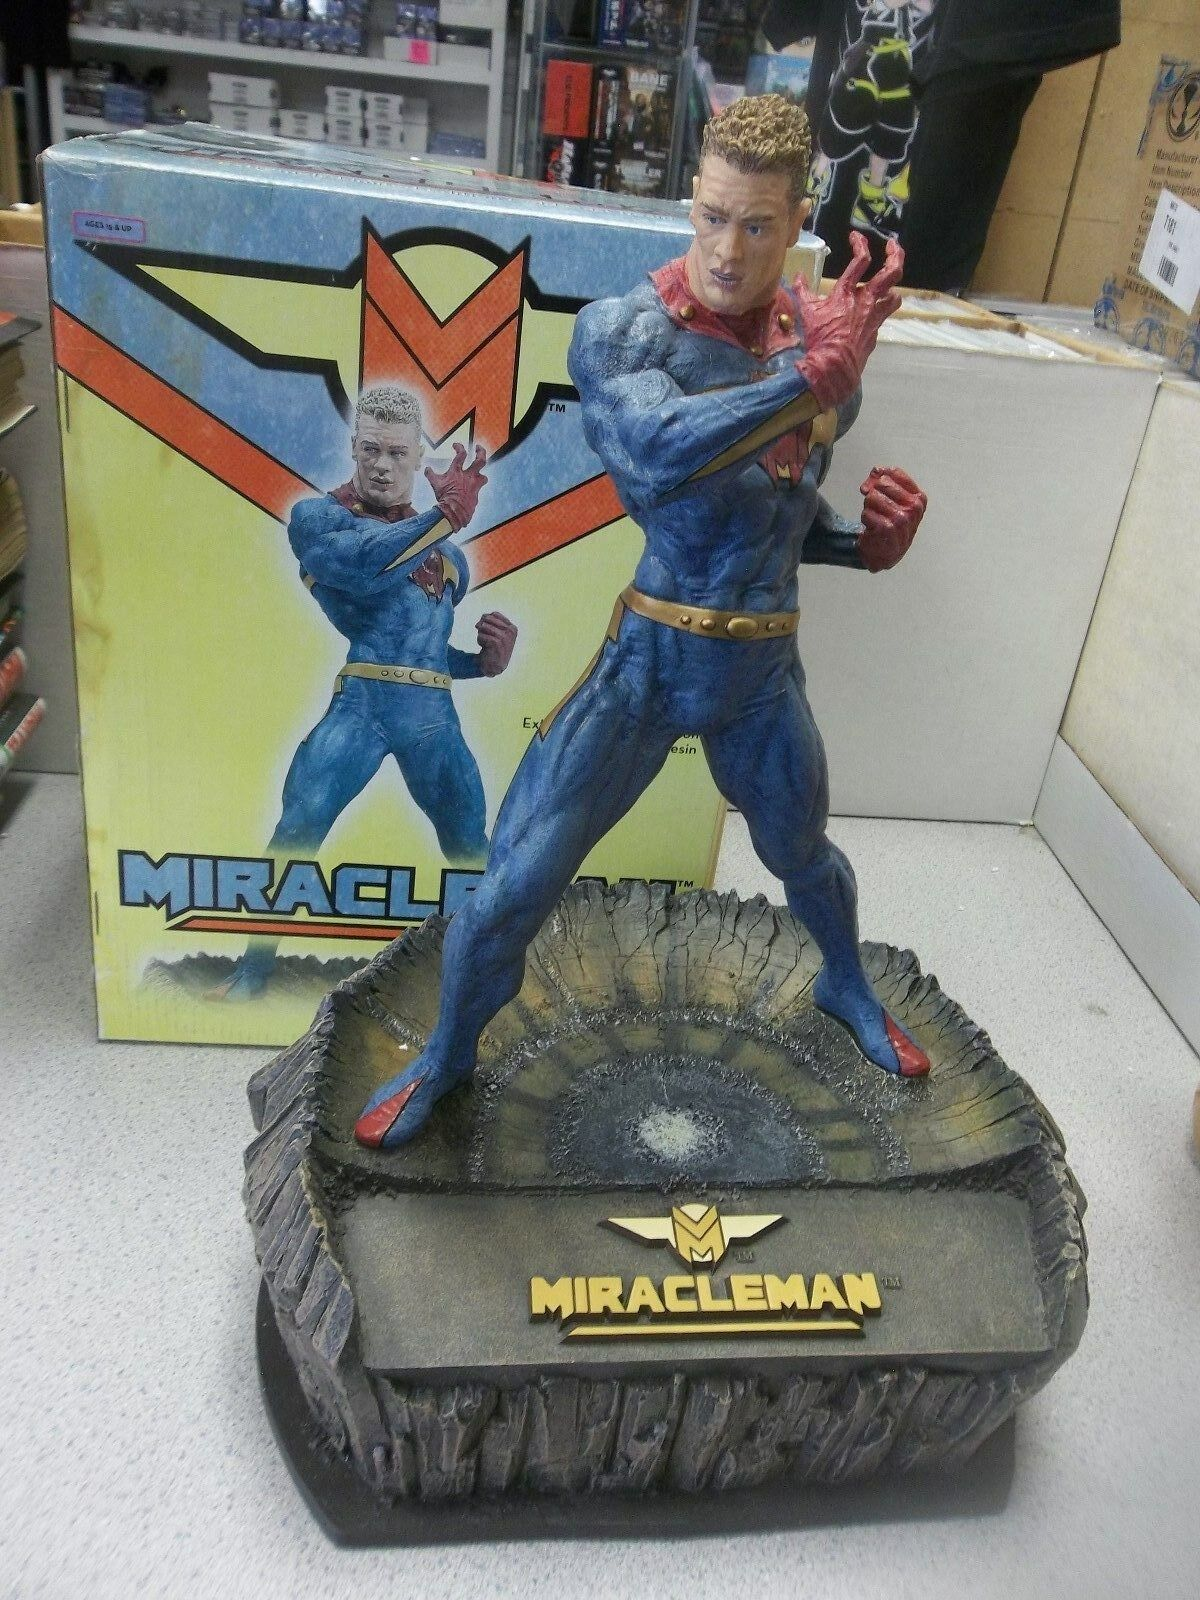 MIRACLEMAN 12  statue figurine w  base McFARLANE Toys cold cast resin statue